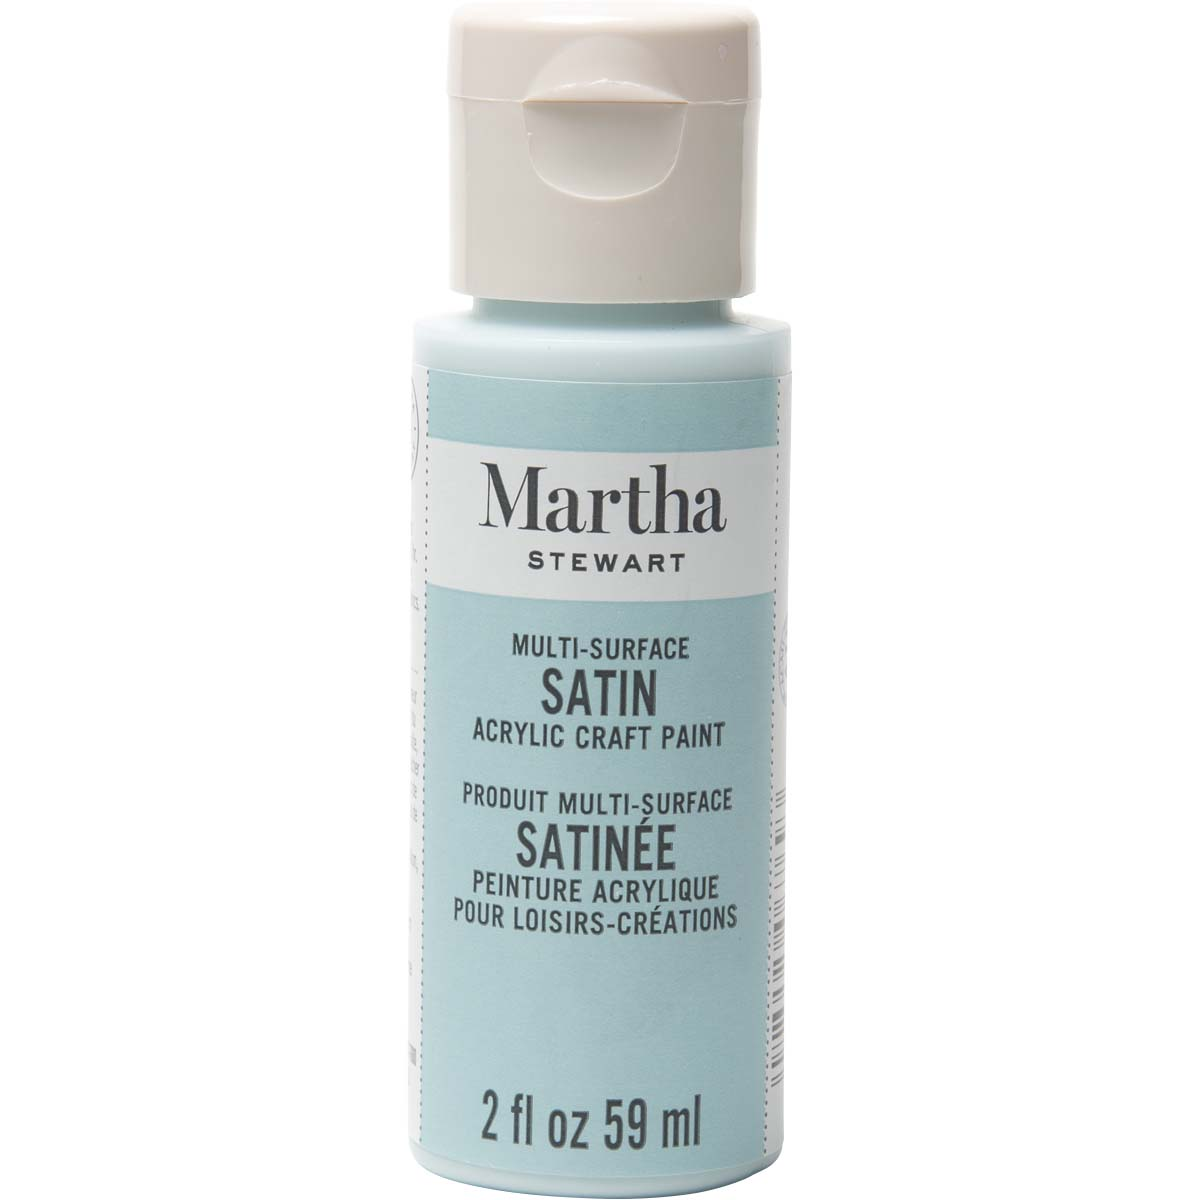 Martha Stewart ® Multi-Surface Satin Acrylic Craft Paint - Summer Haze, 2 oz.